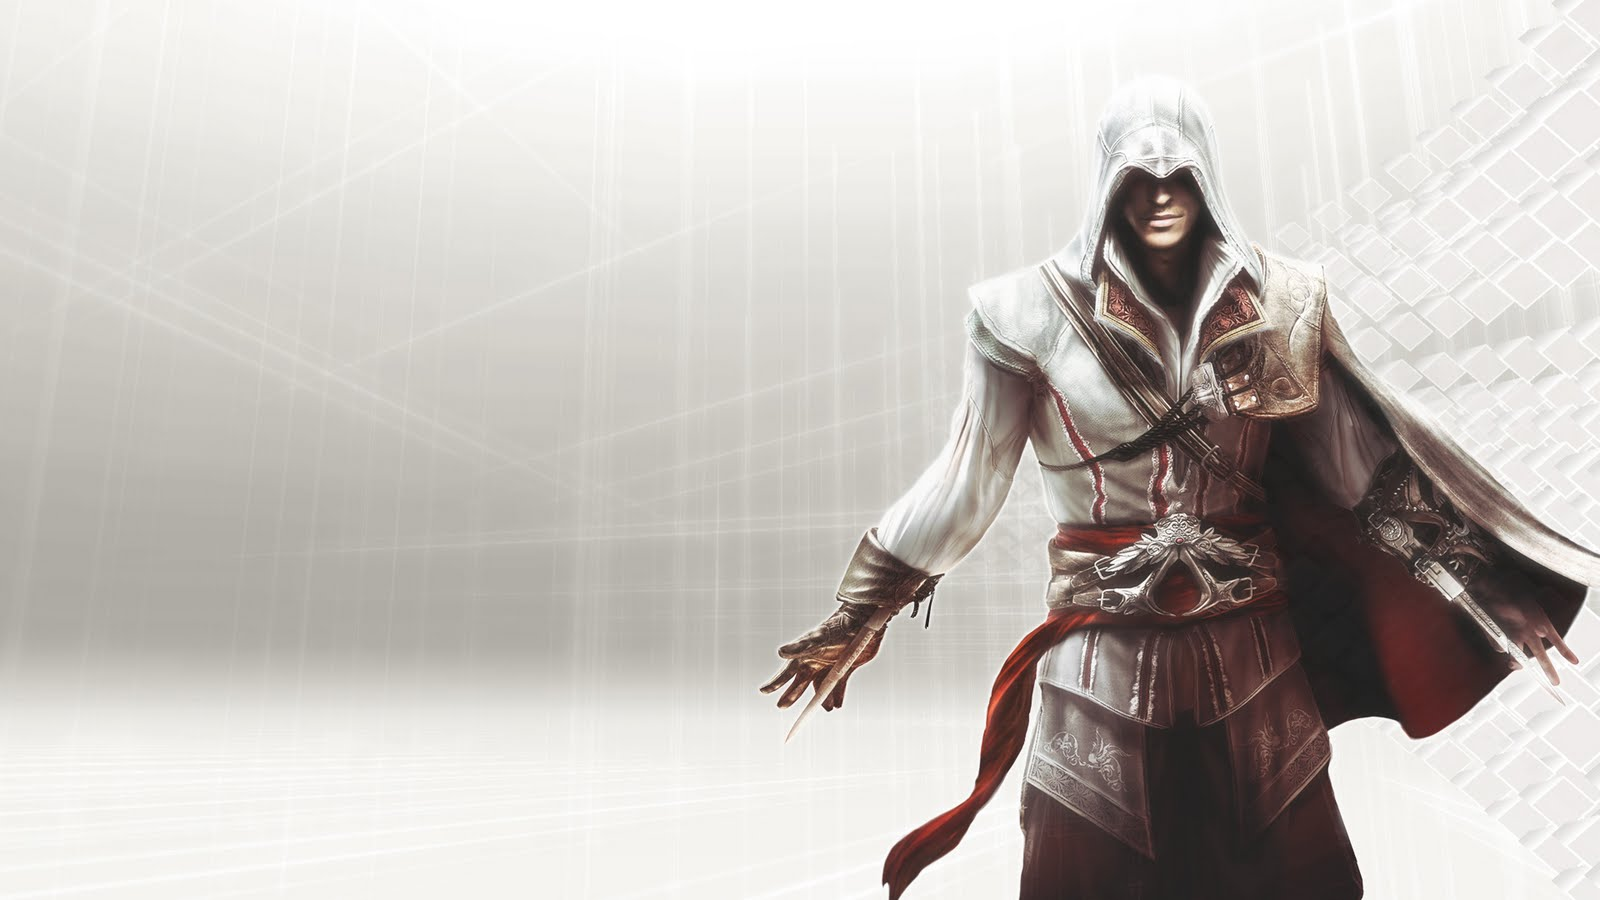 Assassins creed 2 wallpaper 1080p Funny Amazing Images 1600x900